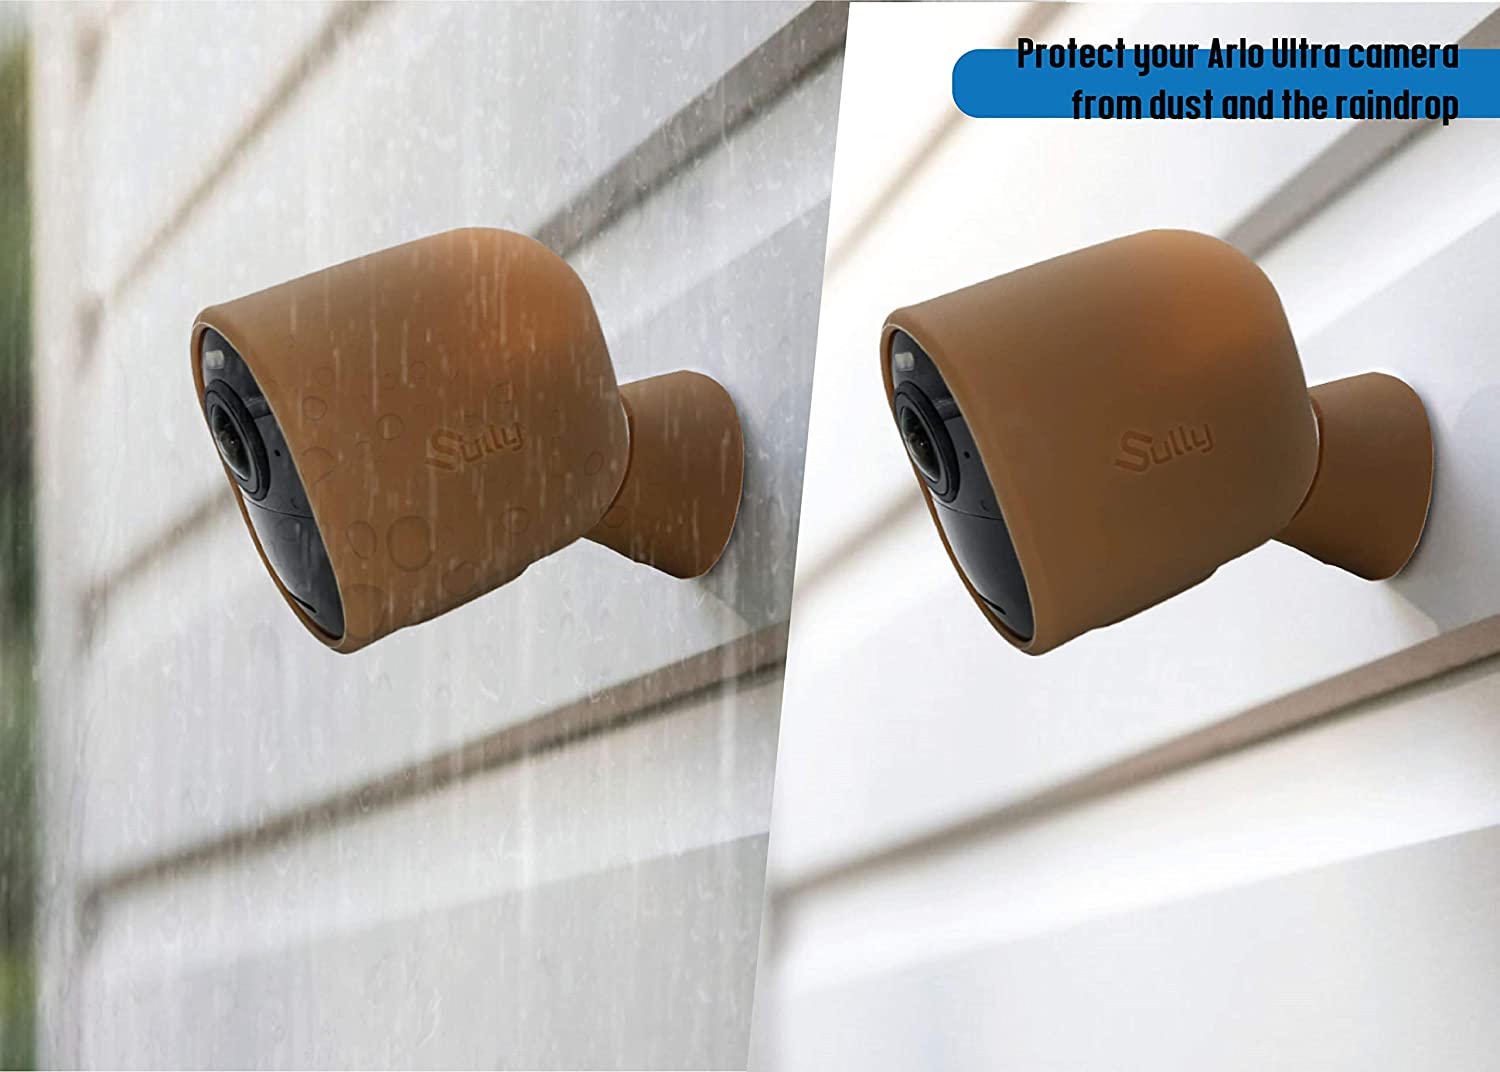 Skins for Arlo Pro3 Cam /& Mount Base by Sully Silicon Sleeves for Arlo Ultra Security Camera Silicone Case for Arlo Ultra 4K /& Arlo Pro 3 Brown 2 pcs - Ultra HD Series Skins w//Mount Cover